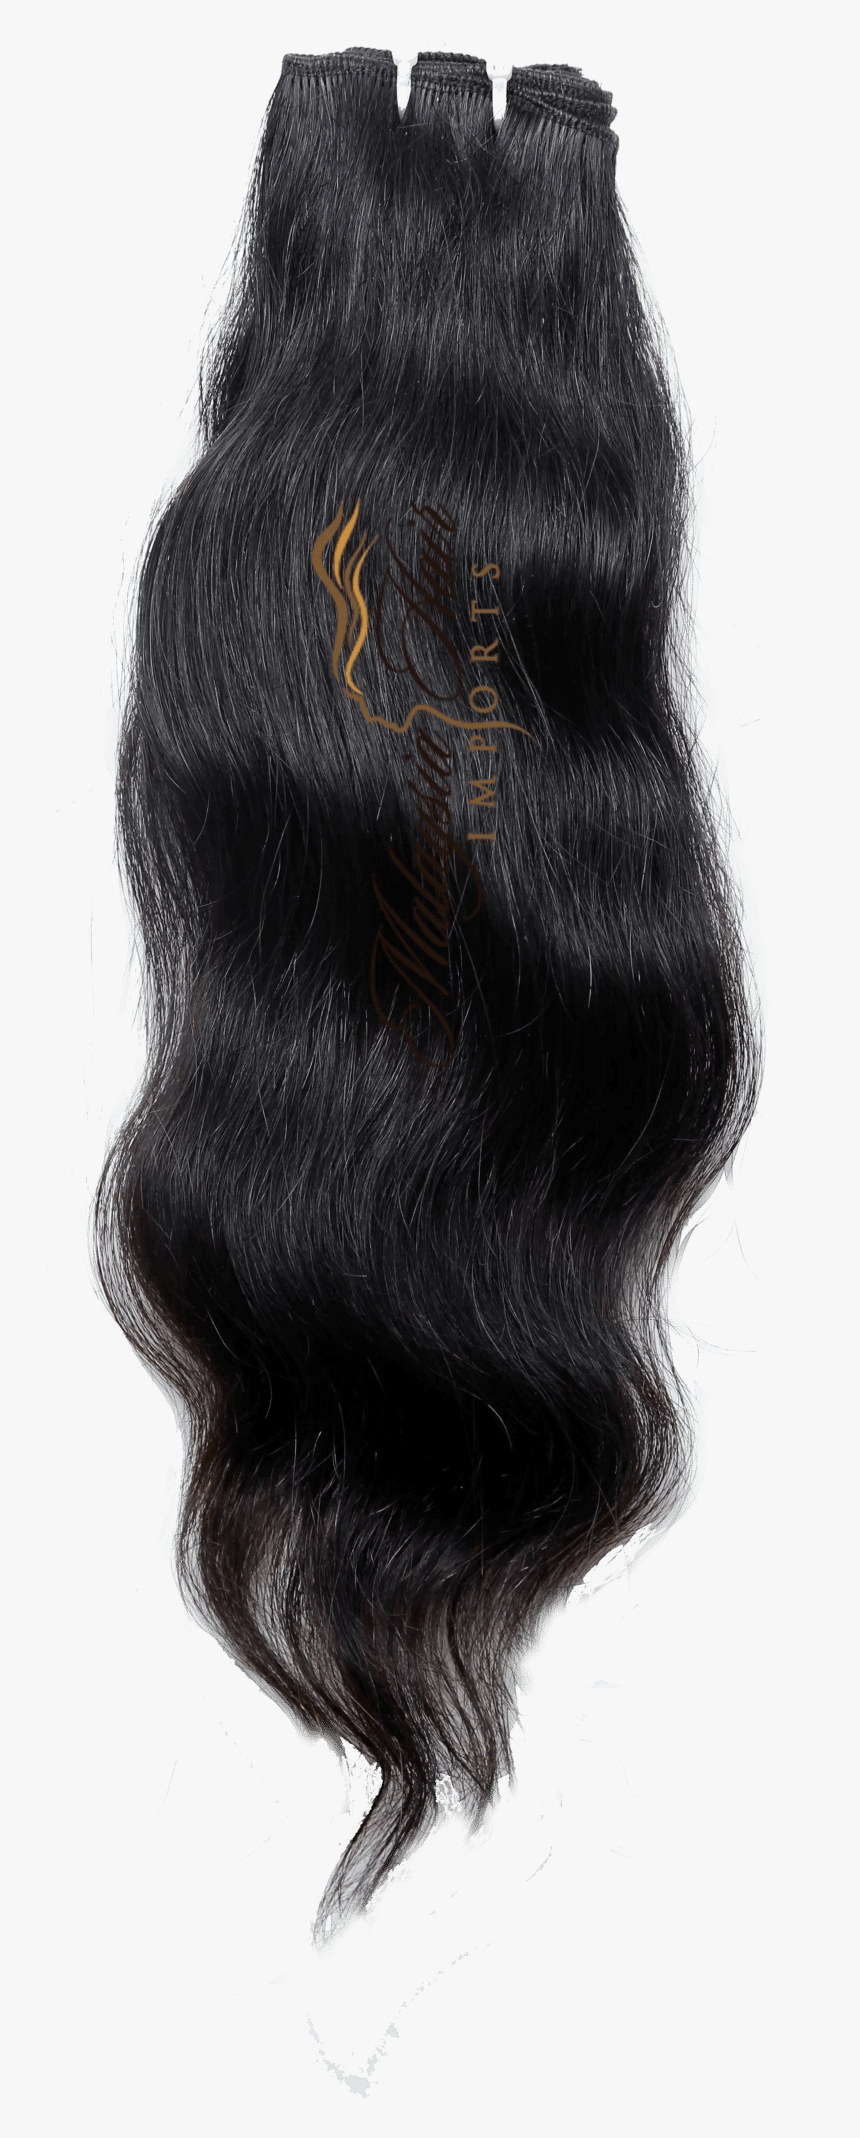 Cambodian Hair Extensions - Weave Png, Transparent Png, Free Download